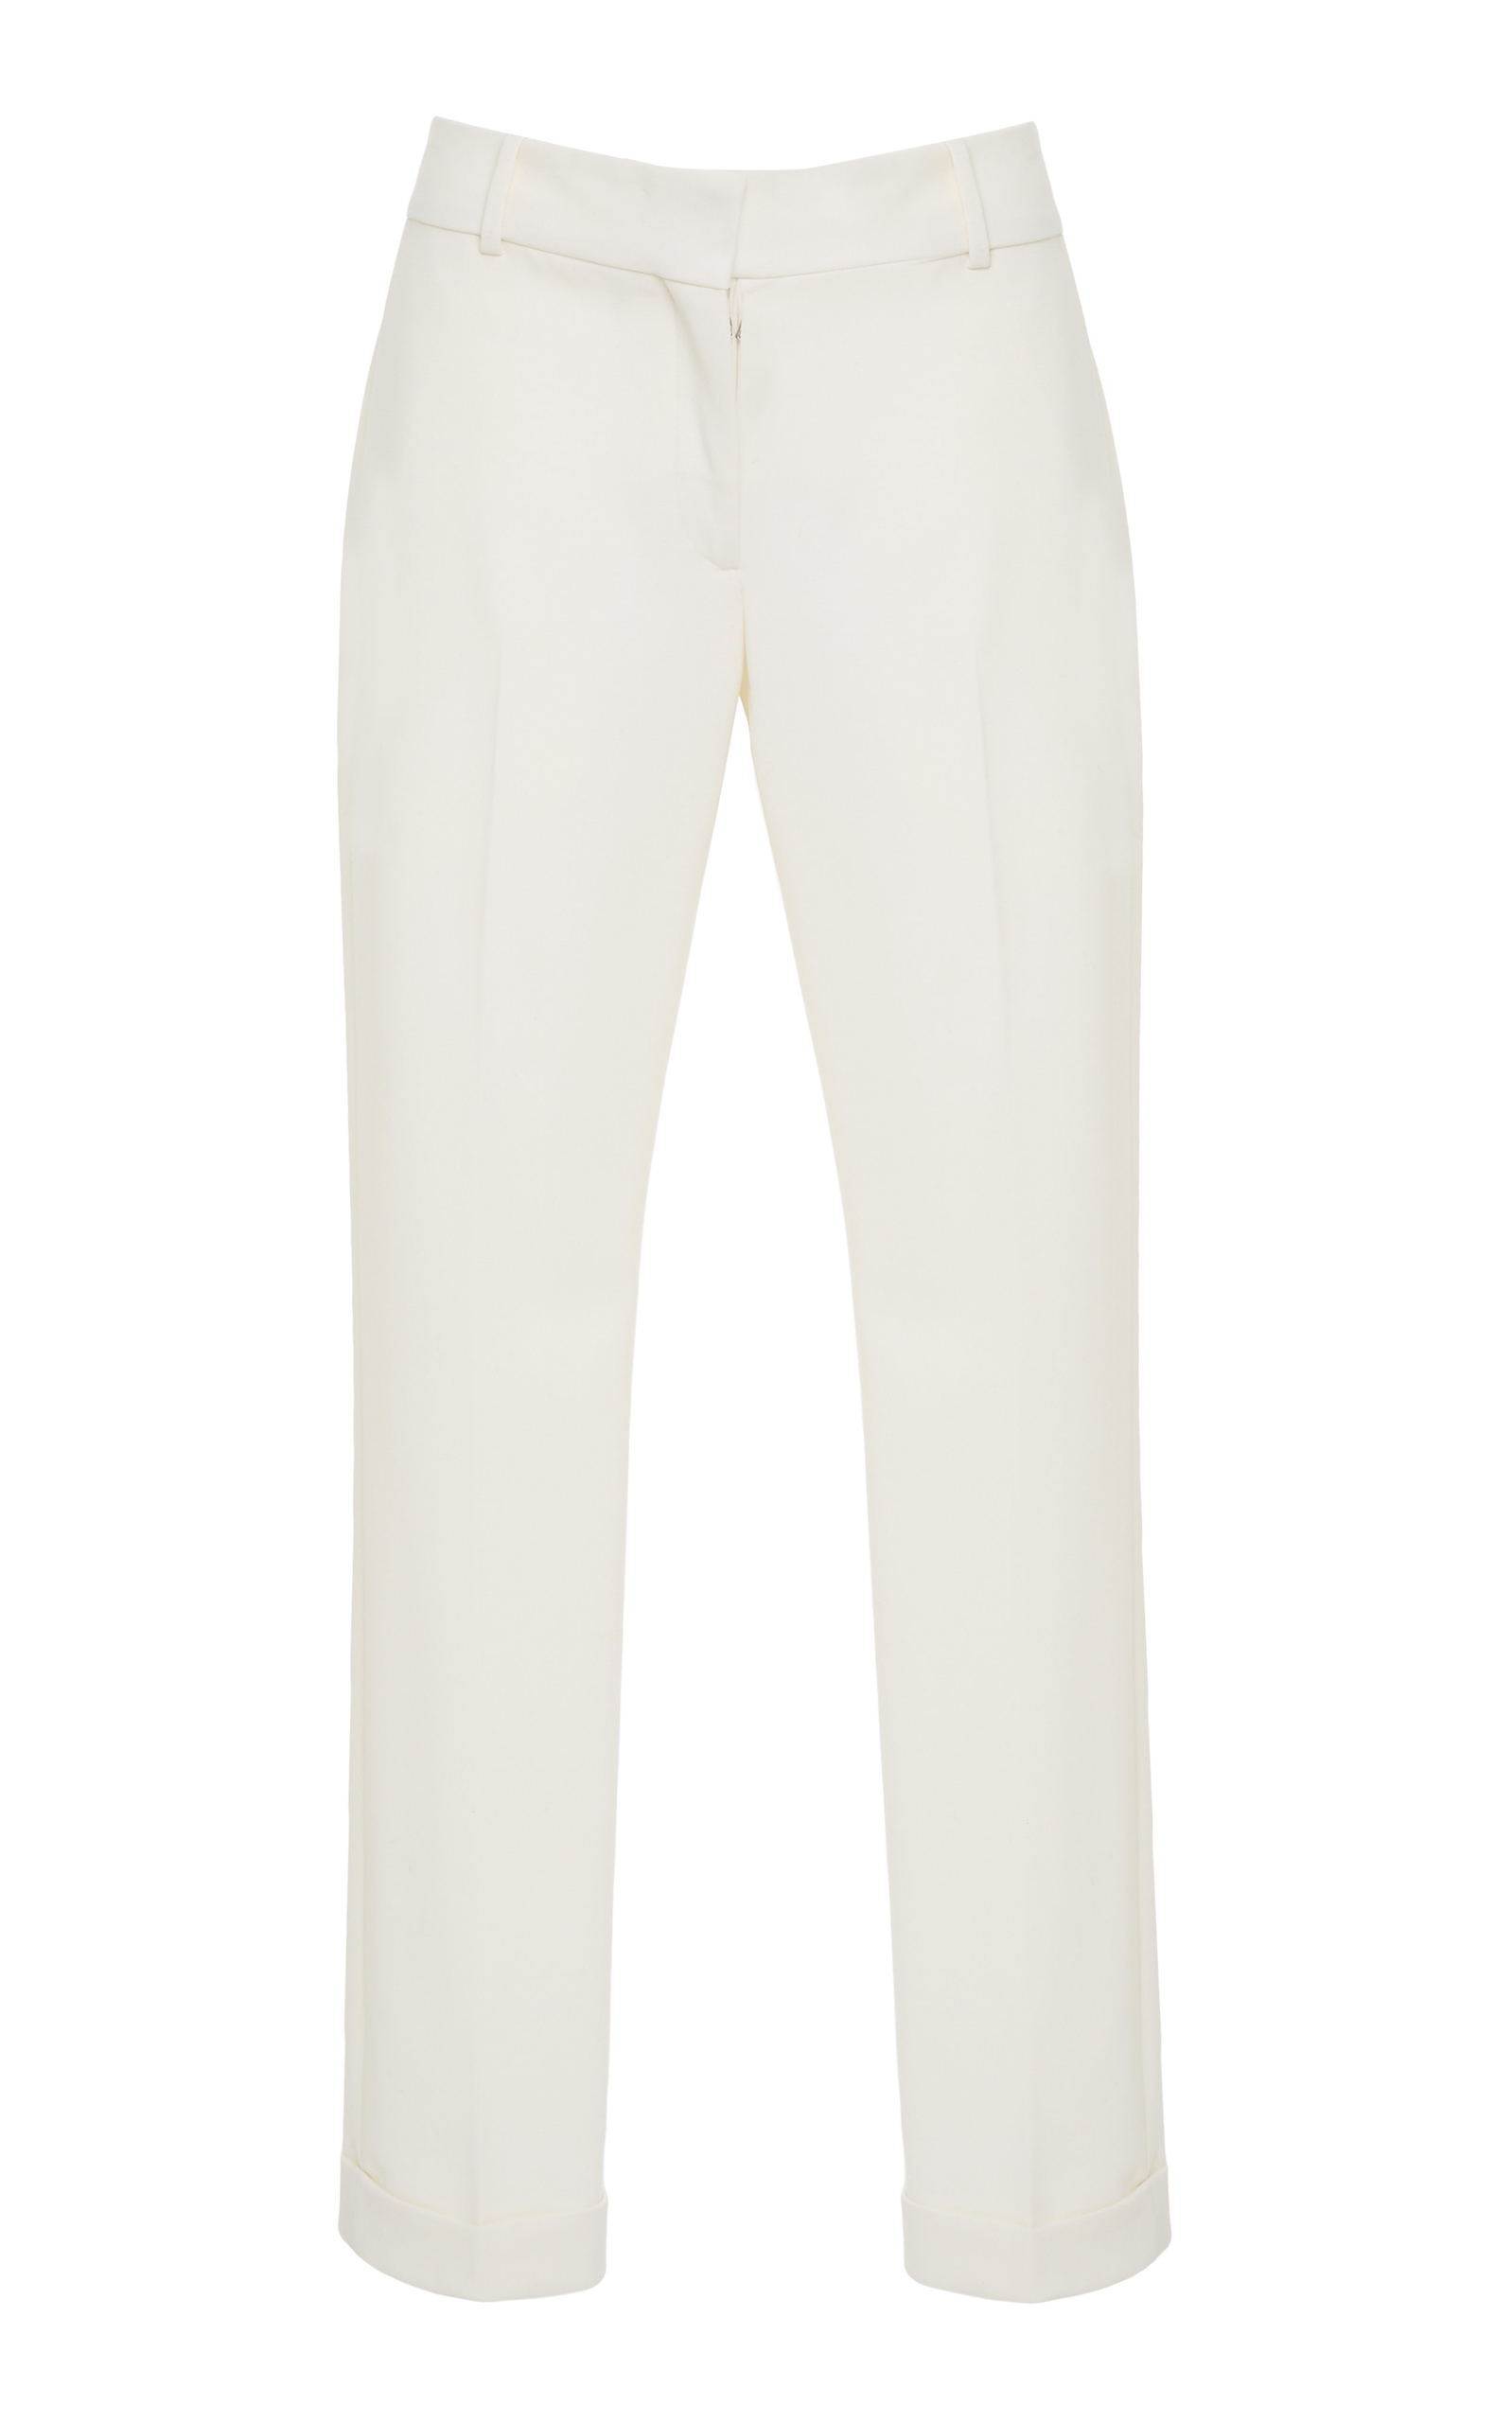 MAREI 1998 Erigeron Pants in White